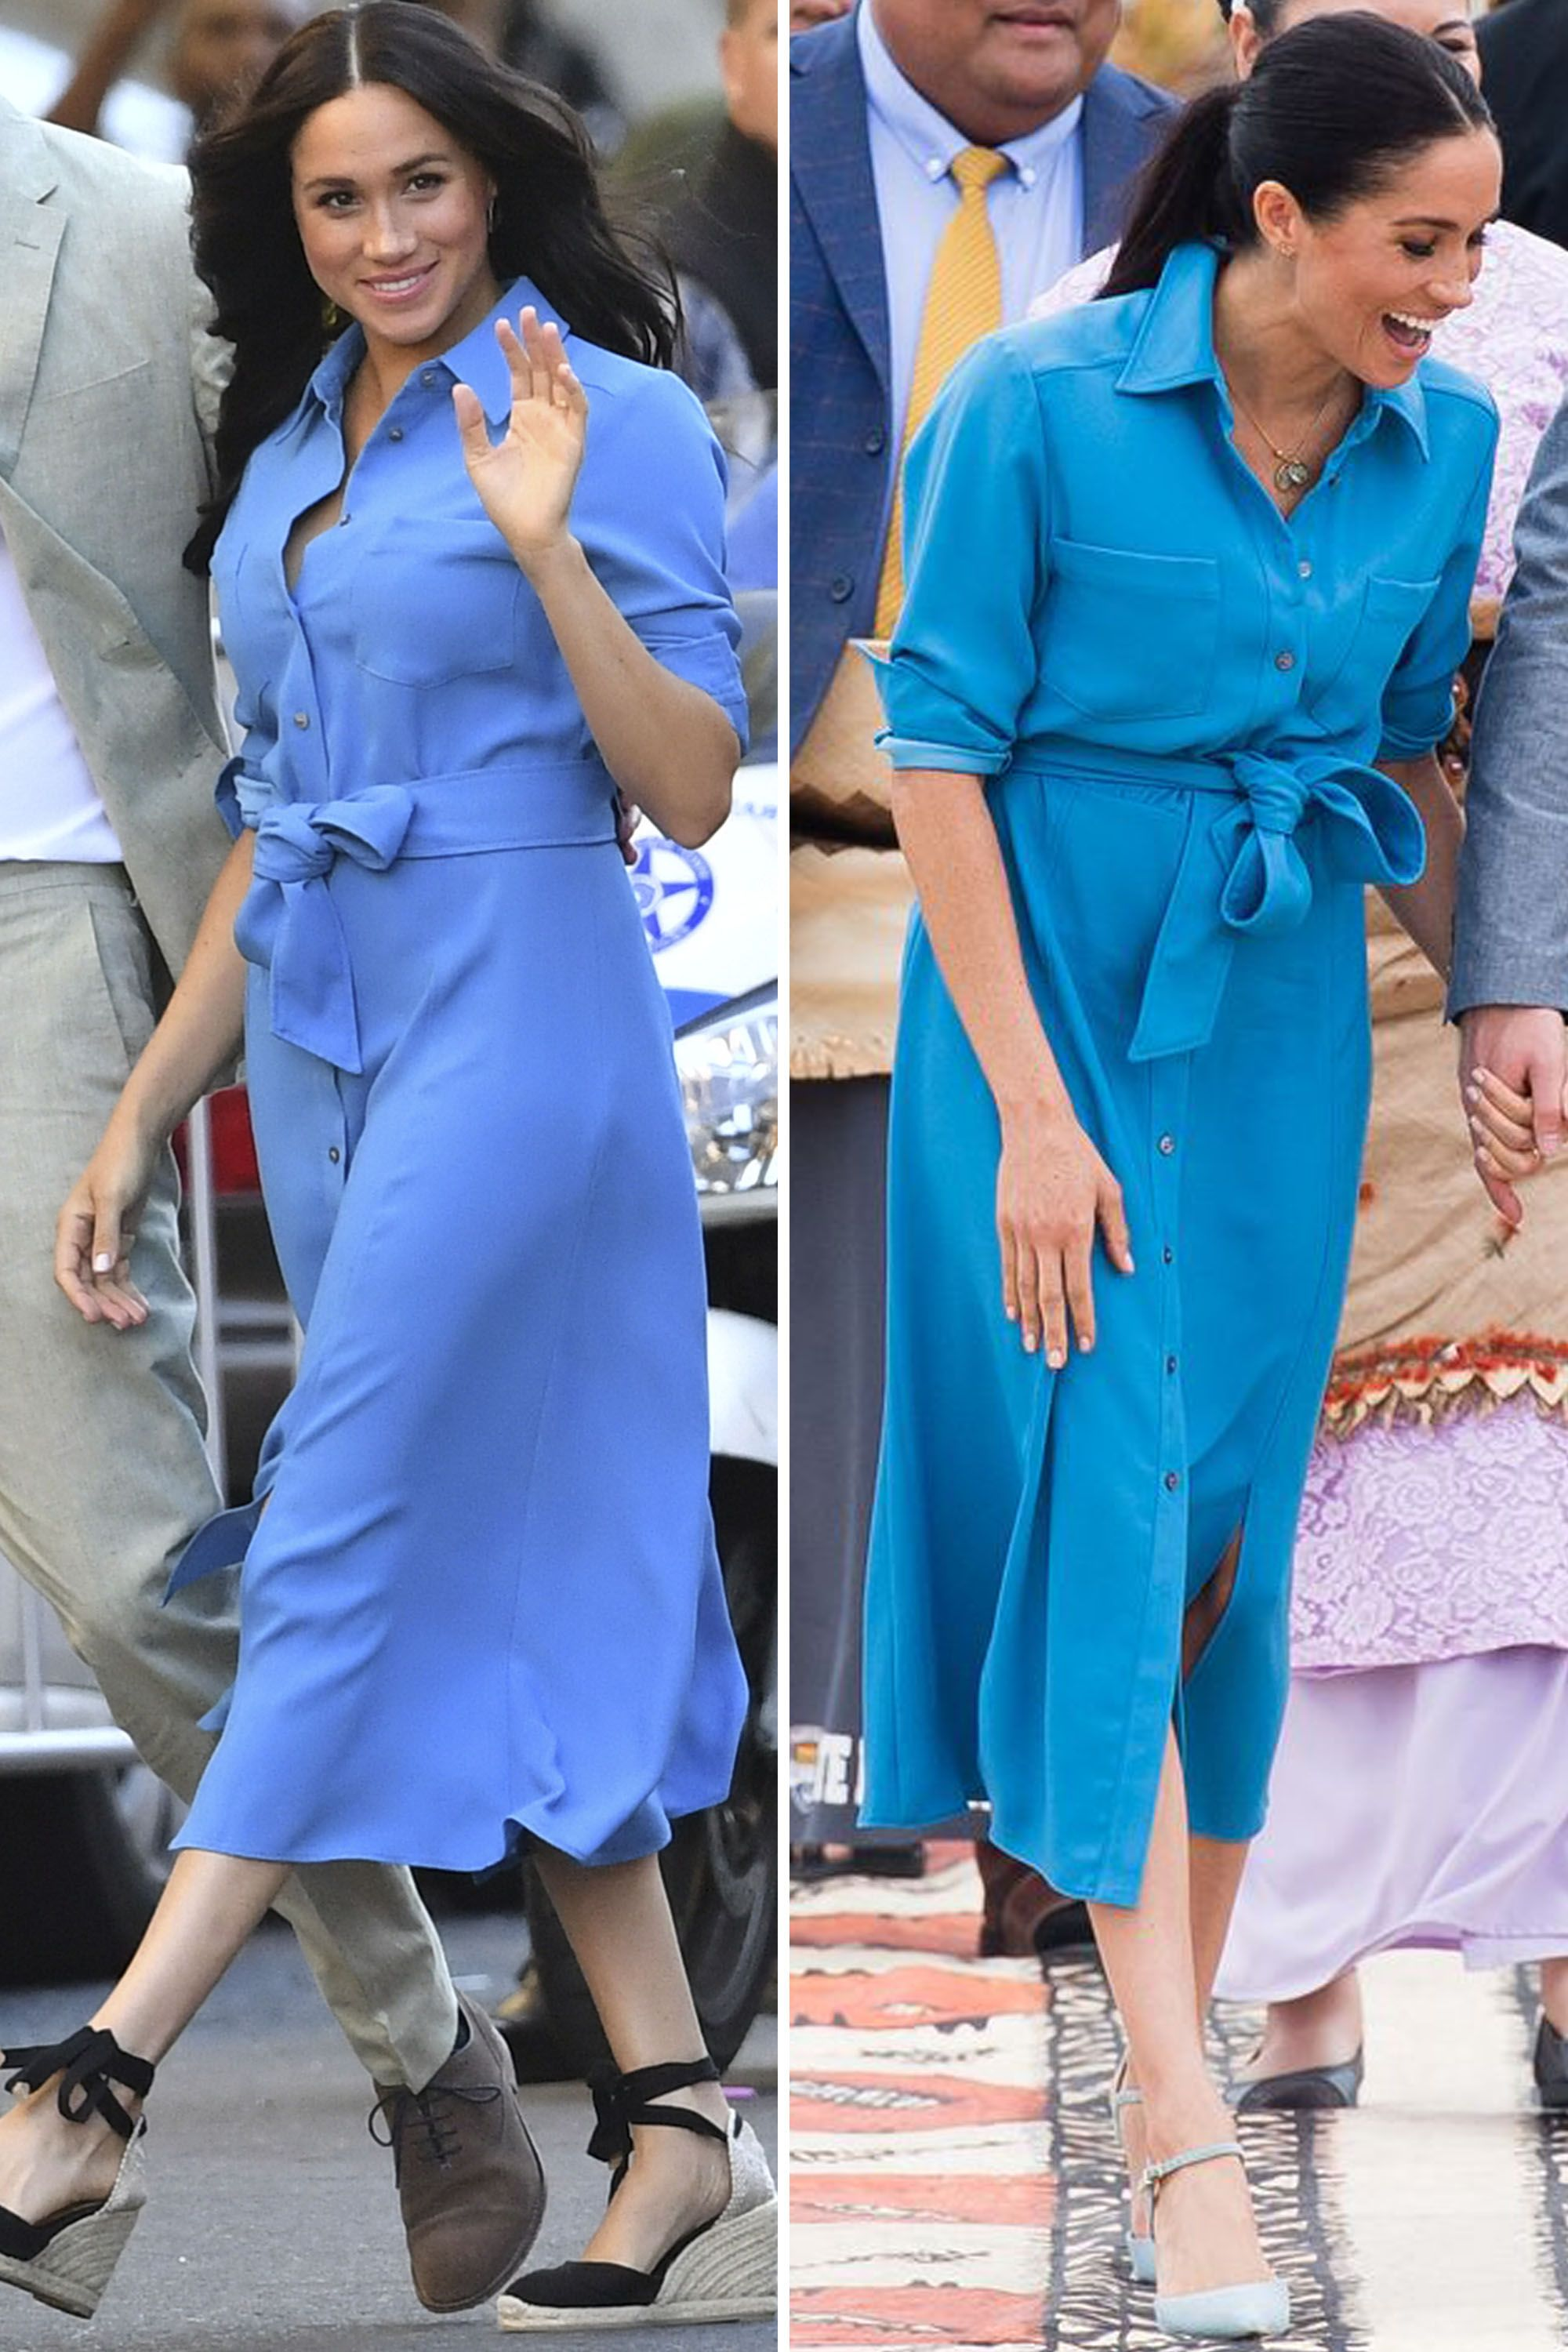 Meghan Markle Re-wears Her Veronica Beard Dress from Her Last Royal Tour